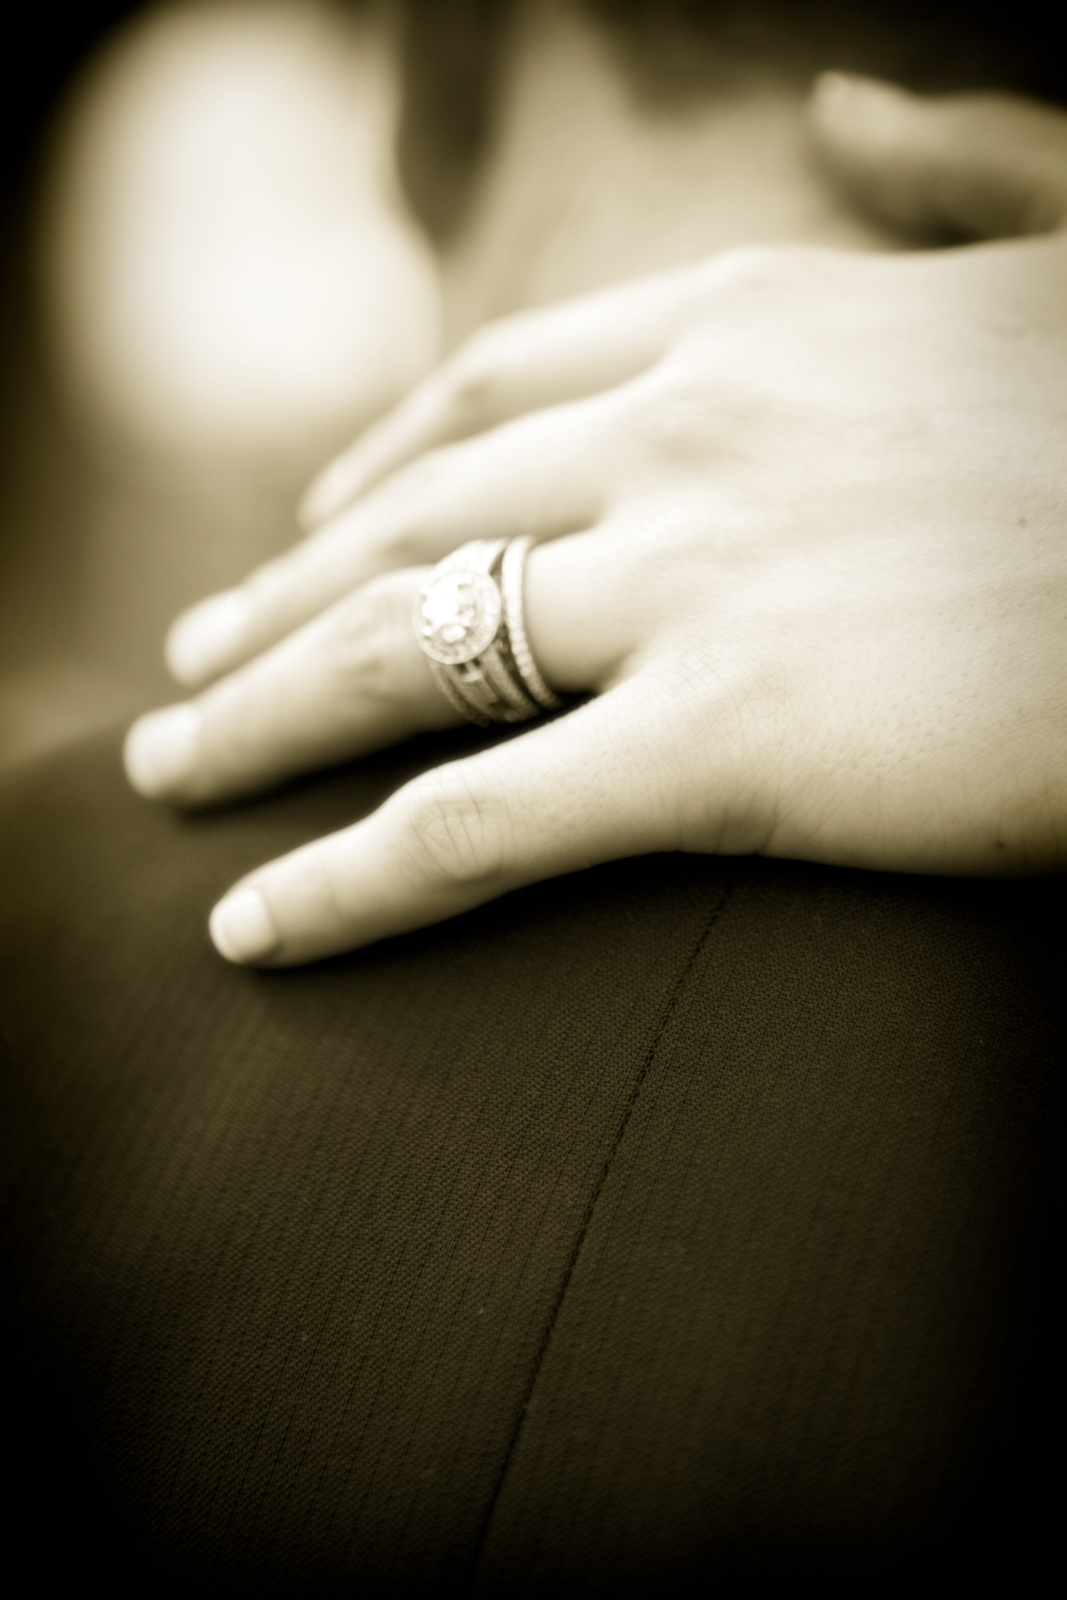 Lovely ring and hand at the hermosa inn, arizona